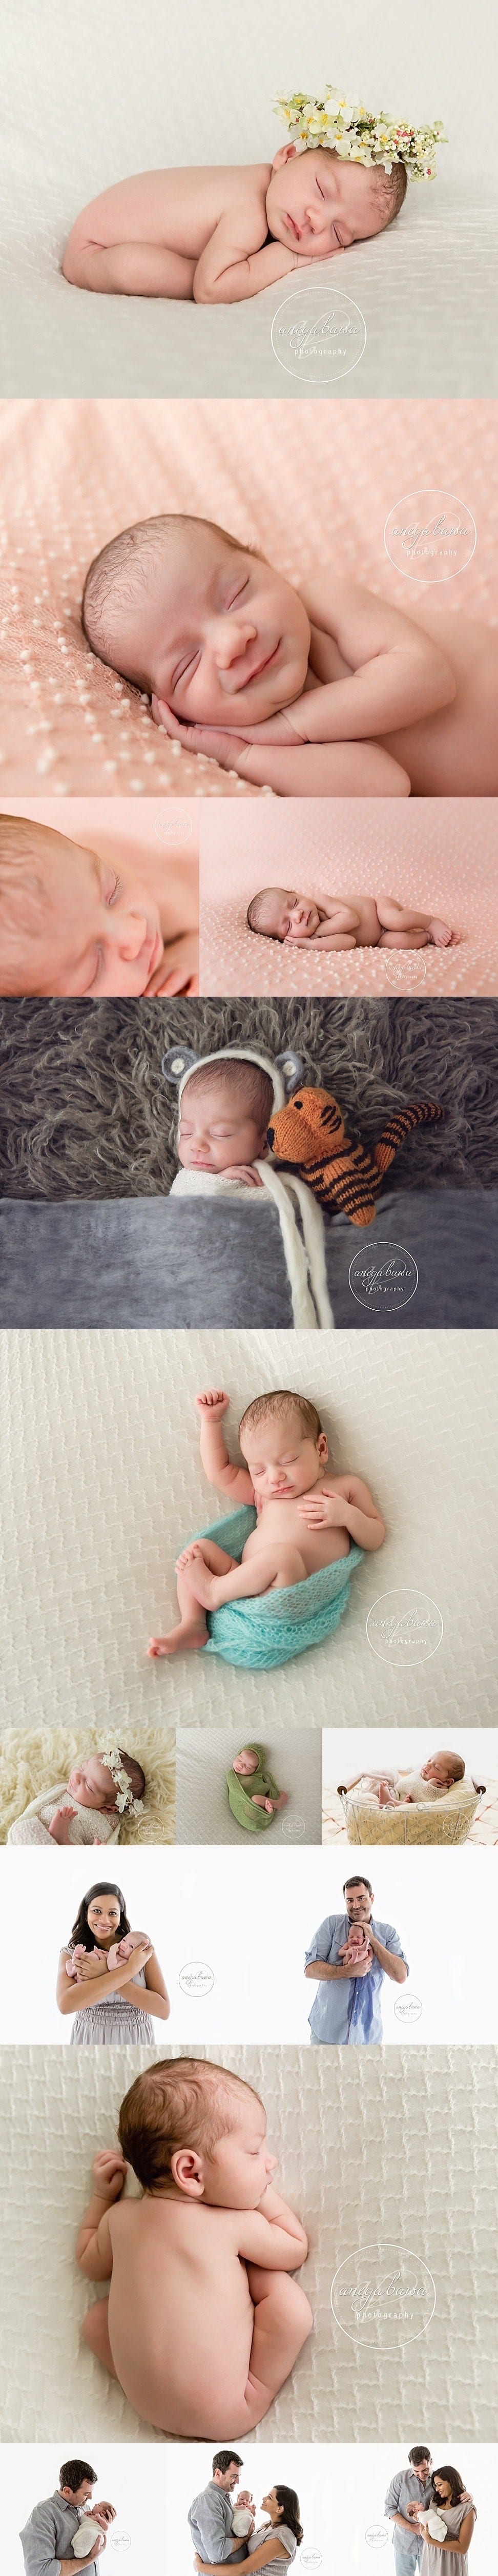 newborn photoshoot in gurgaon noida